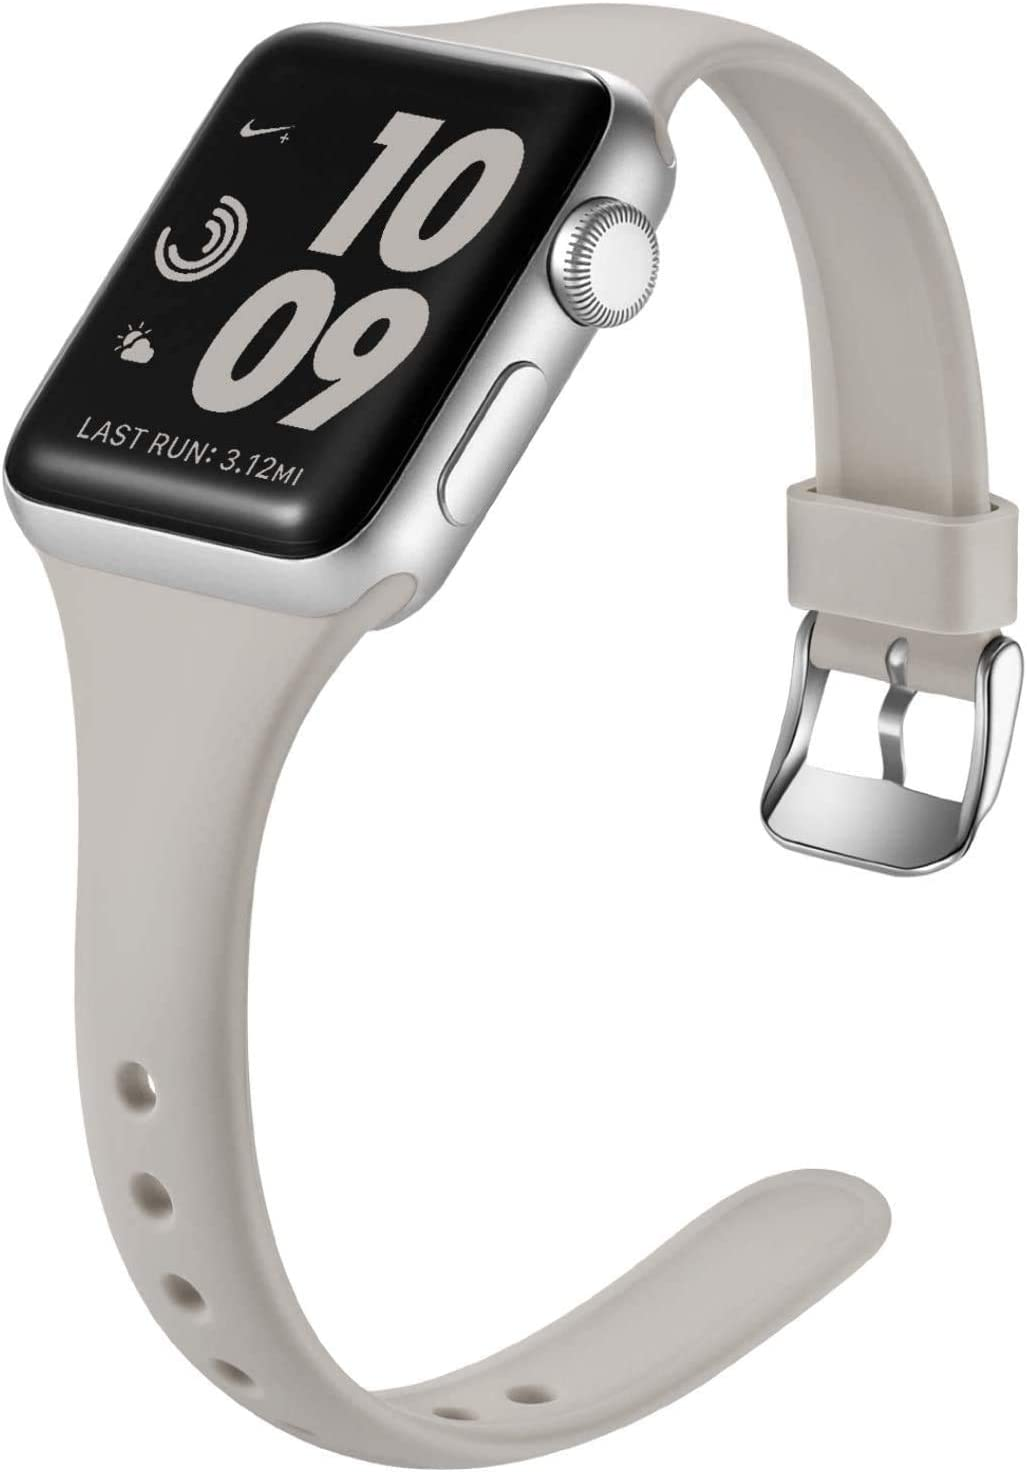 Laffav Slim Band Compatible with Apple Watch 40mm 38mm for Women Men, Soft Silicone Narrow Thin Sport Replacement Strap for iWatch SE & Series 6 & Series 5 4 3 2 1 (Pebble Gray, 38mm/40mm S/M)